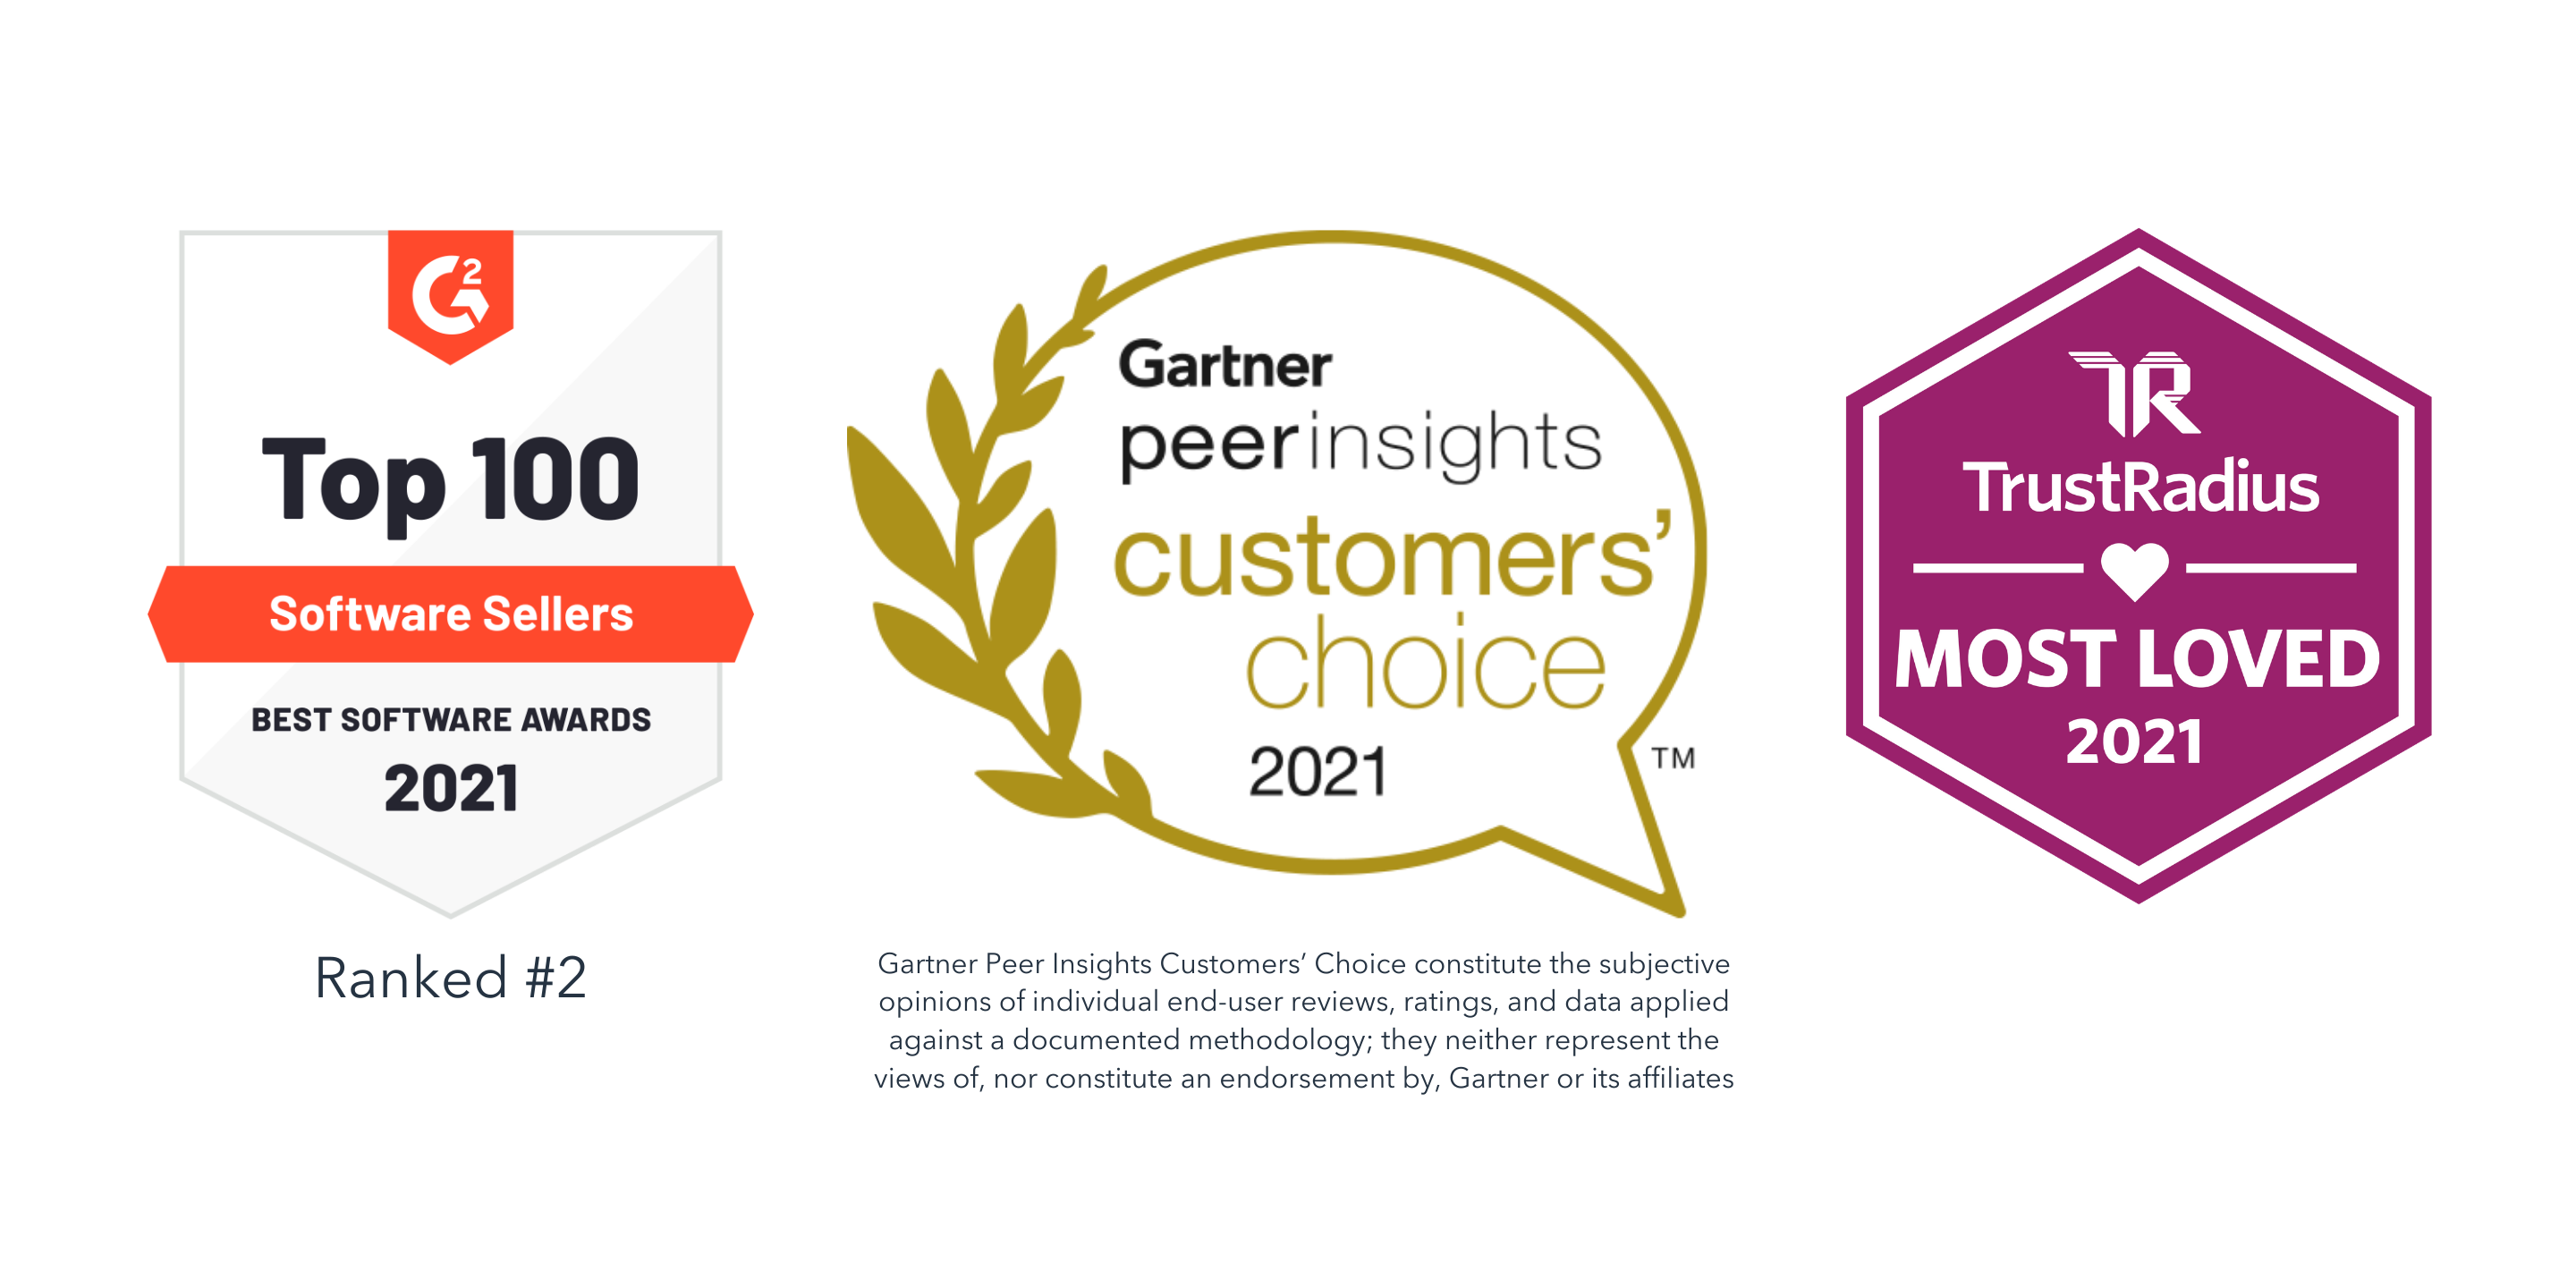 HubSpot Earns Multiple Customer Review Awards, Including #2 Best Global Seller for 2021 by G2